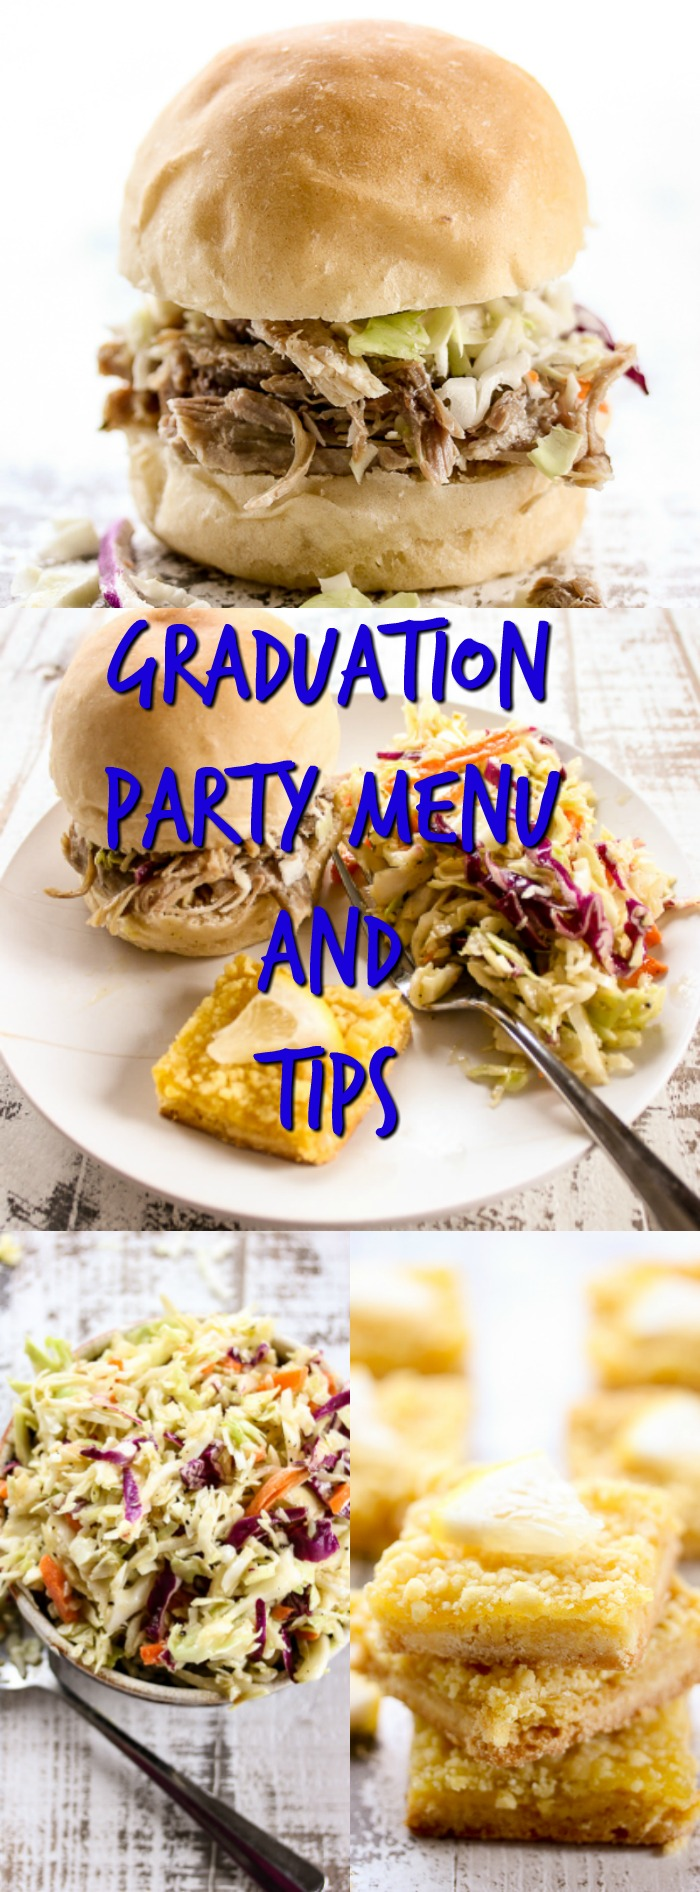 graduation party food graduation menu and tips 30471